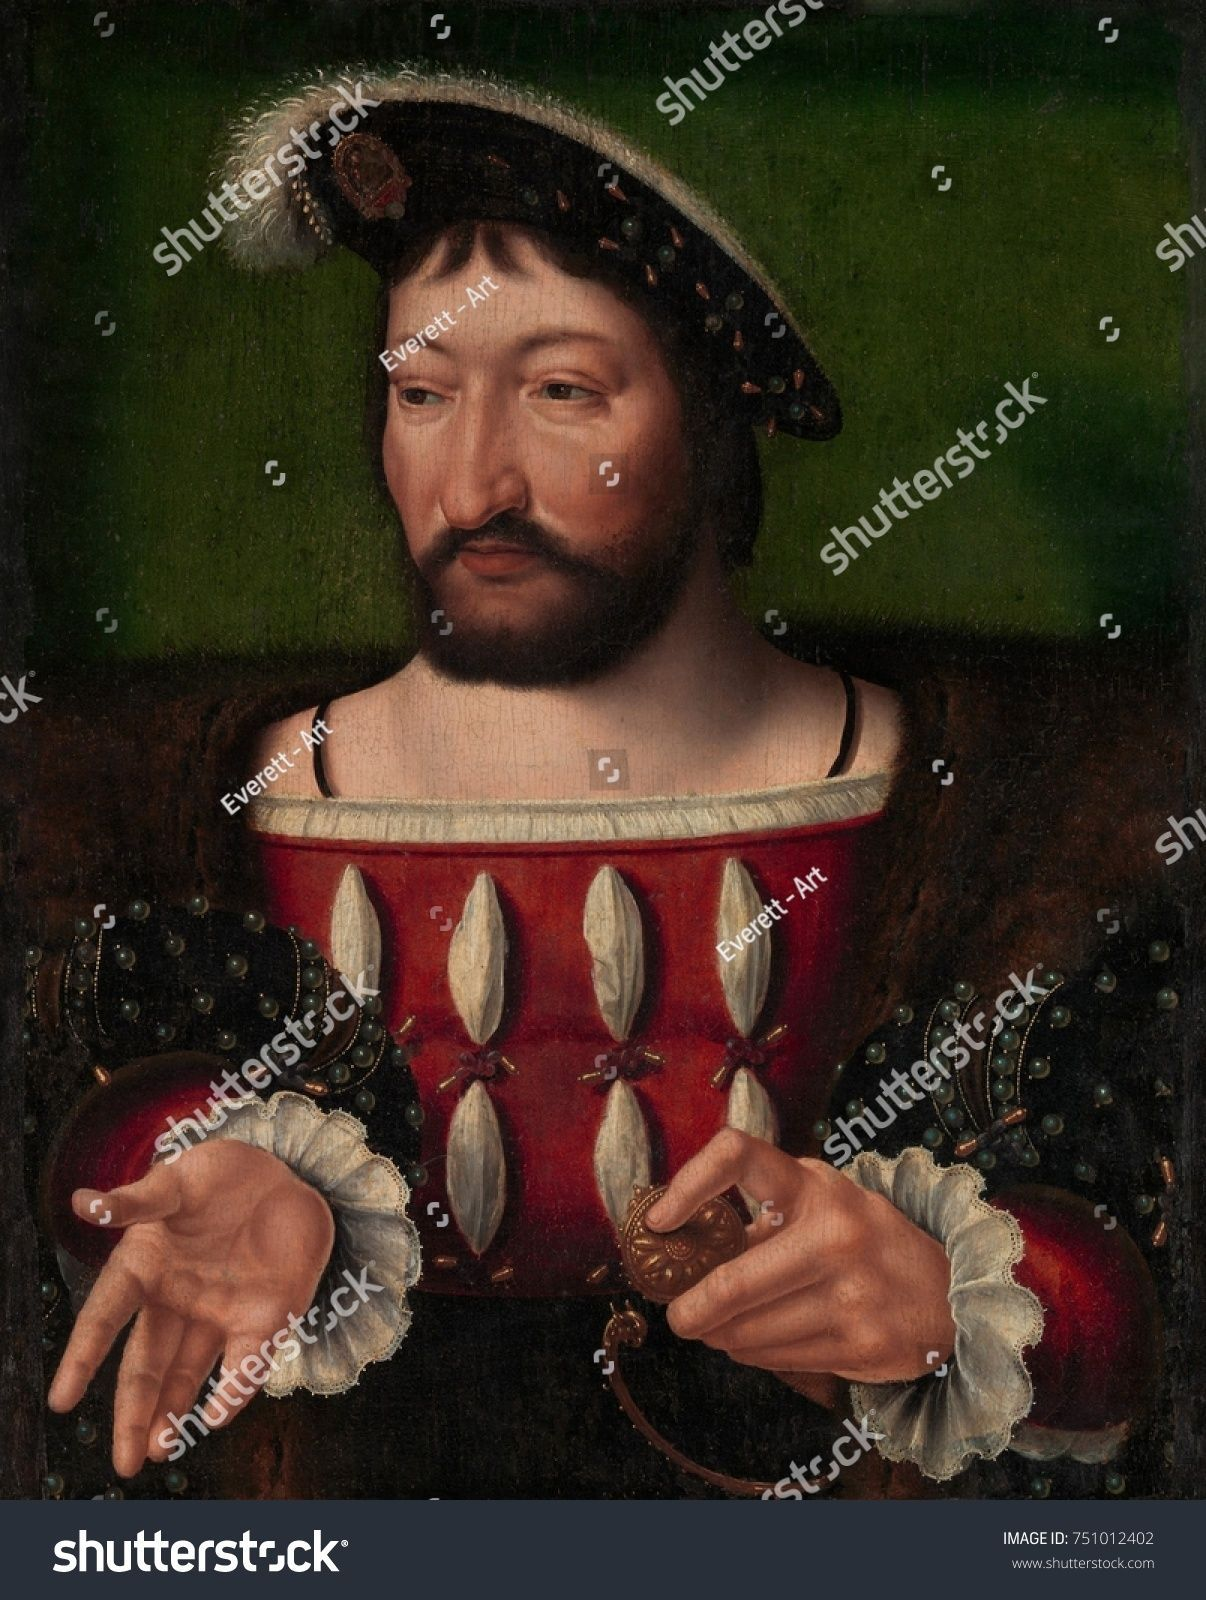 I, KING OF FRANCE, by Joos van Cleve, 1525, Netherlandish, Northern Renaissance painting. Francis I was the first Valois King of France from 1515-47. He was a patron of French Renaissance art ,FRANCIS I, KING OF FRANCE, by Joos van Cleve, 1525, Netherlandish, Northern Renaissance painting. Francis I was the first Valois King of France from 1515-47. He...